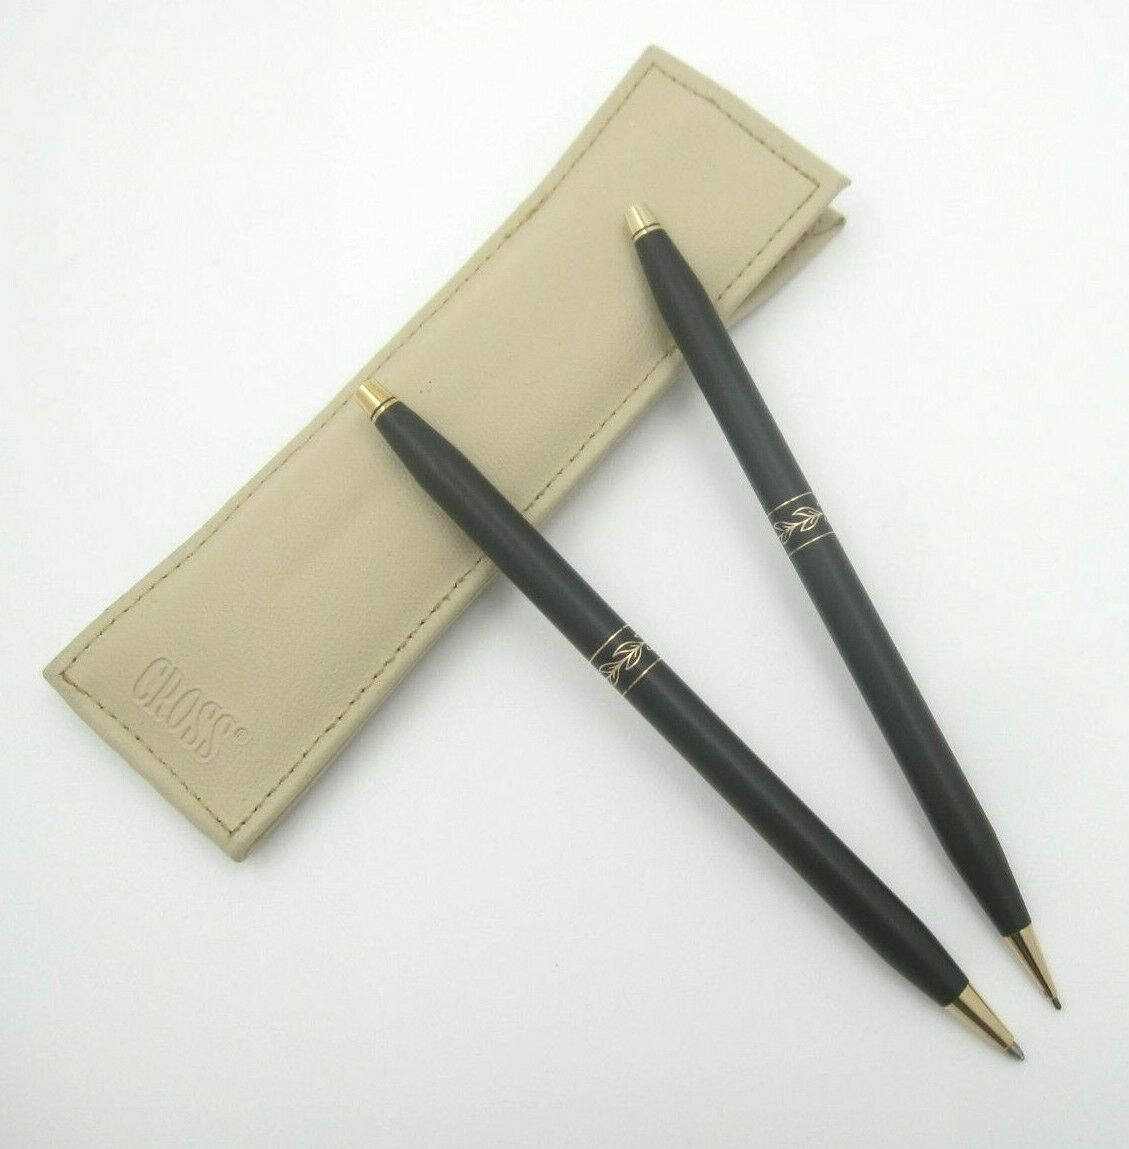 VTG Cross Ball Point Pen & Mechanical Pencil W/ Sleeve (Made in USA) Works